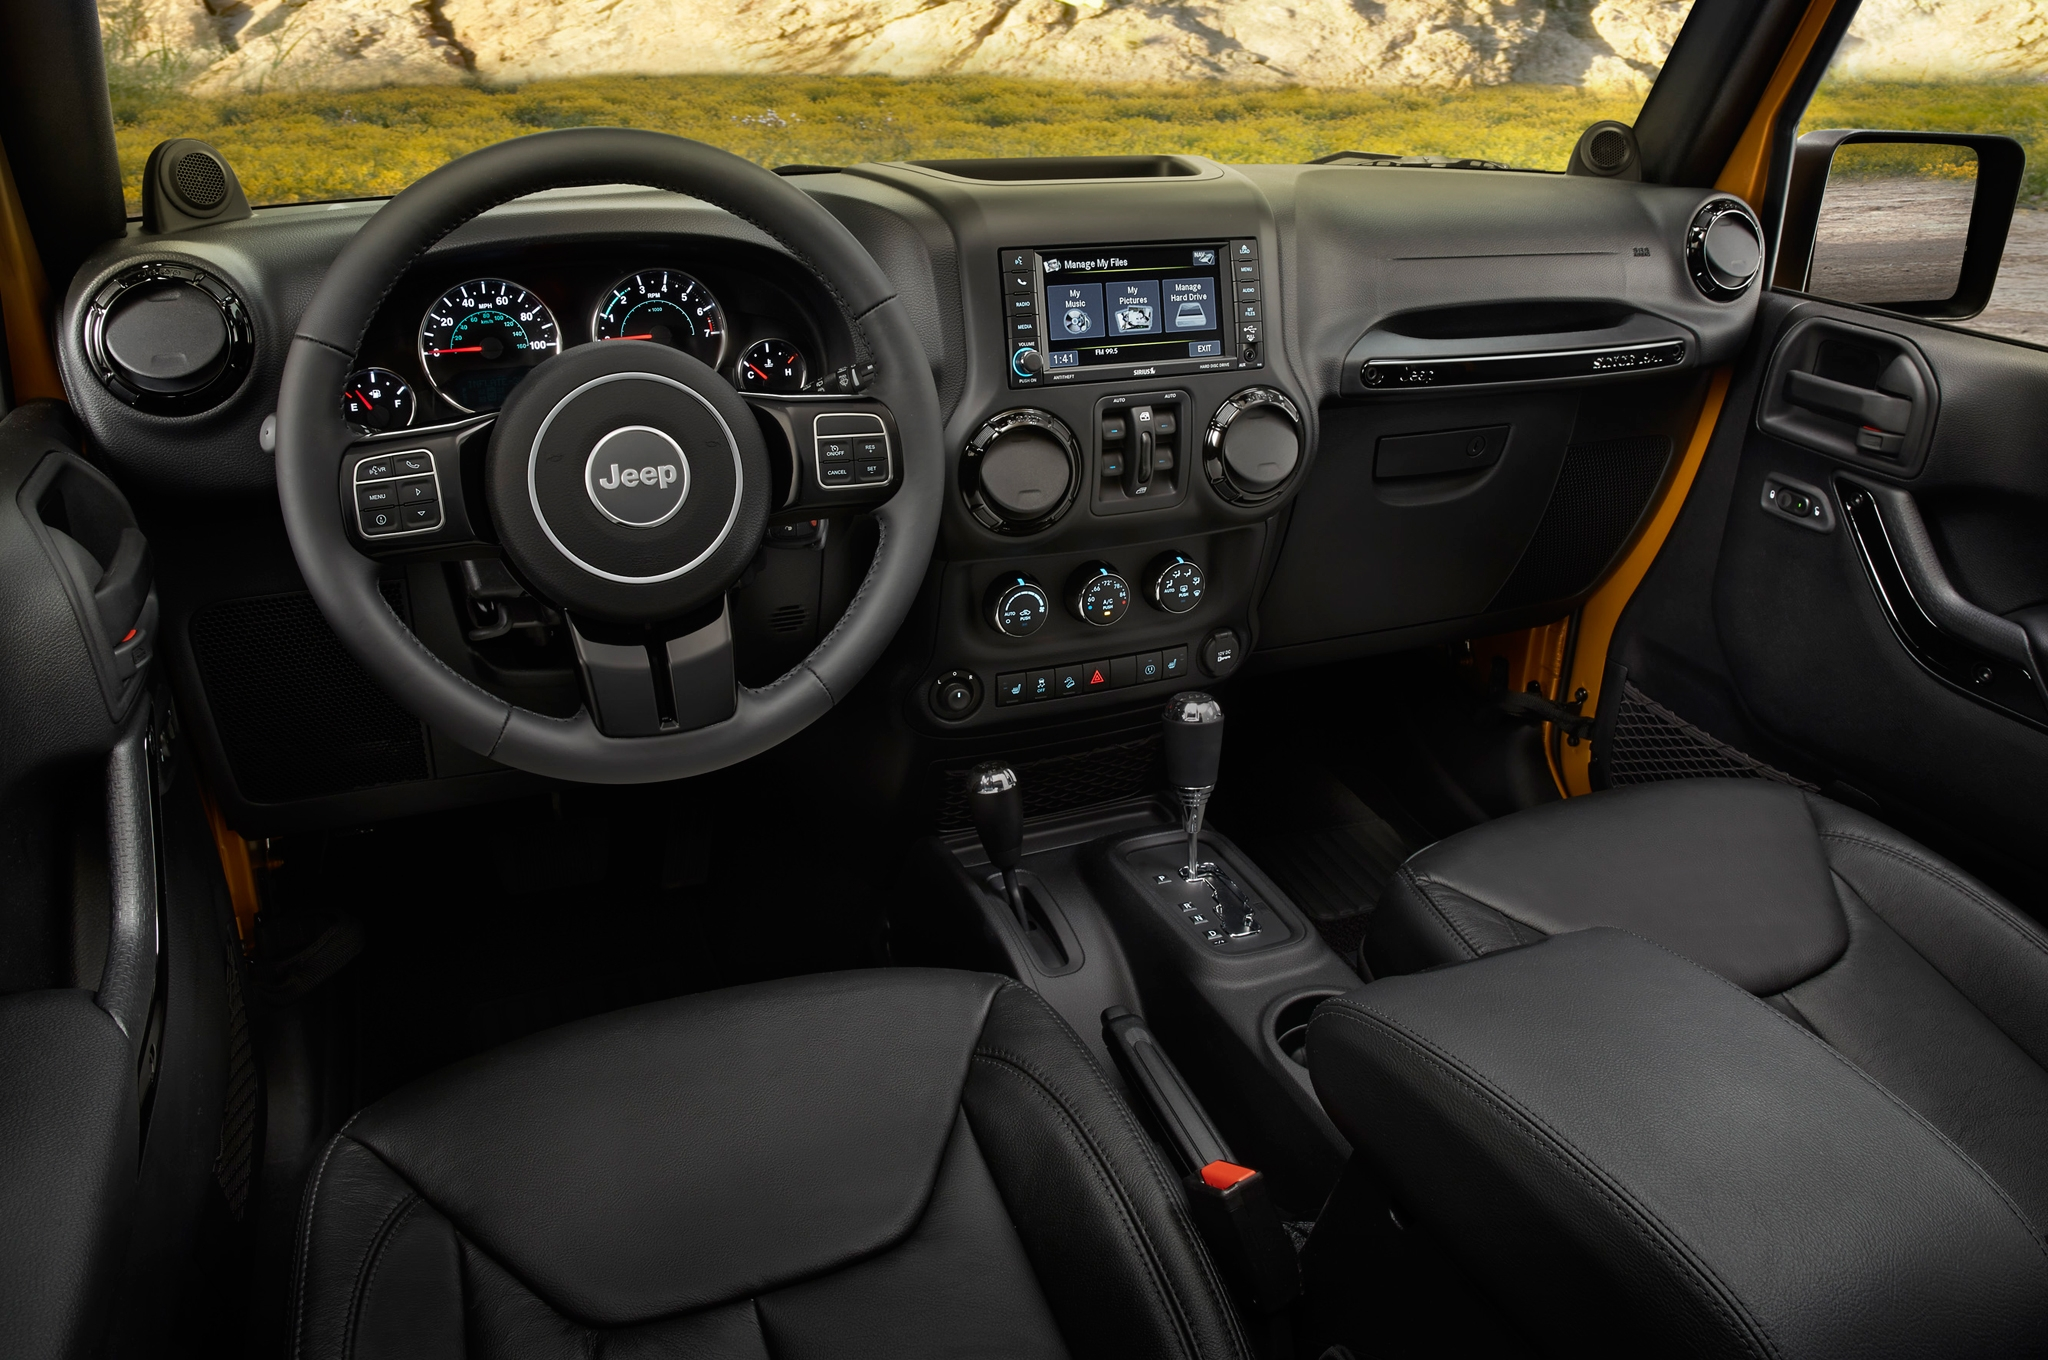 2014 Jeep Wrangler Unlimited Altitude Review (select To View Enlarged Photo)